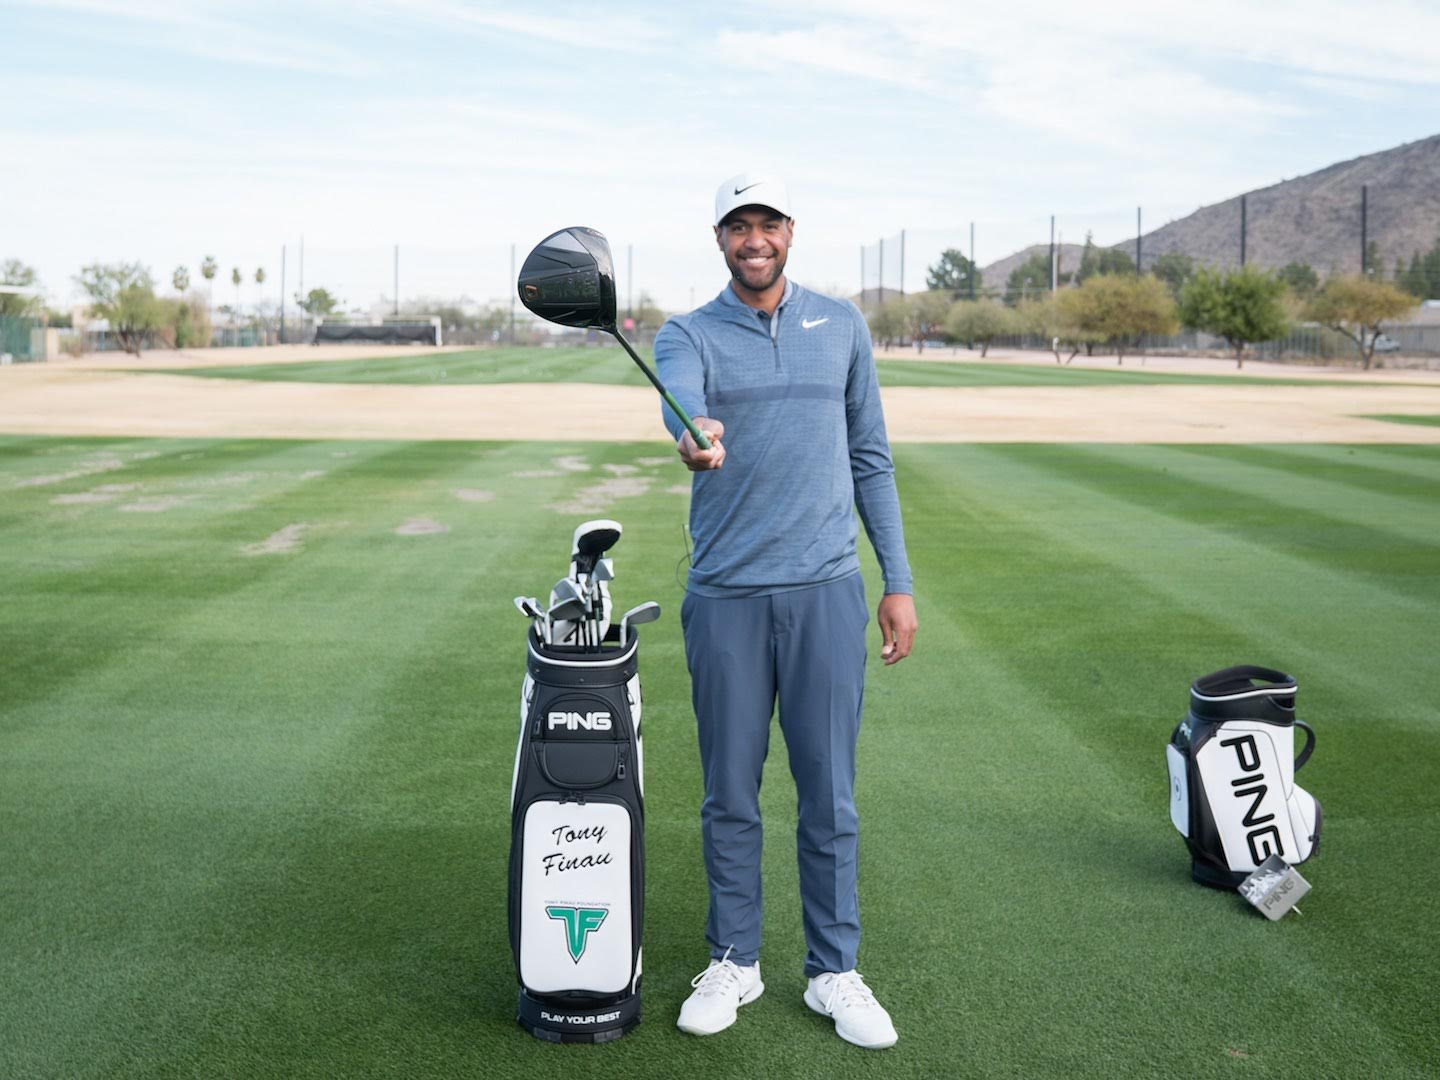 Tony Finau gets final Ryder Cup pick from Jim Furyk